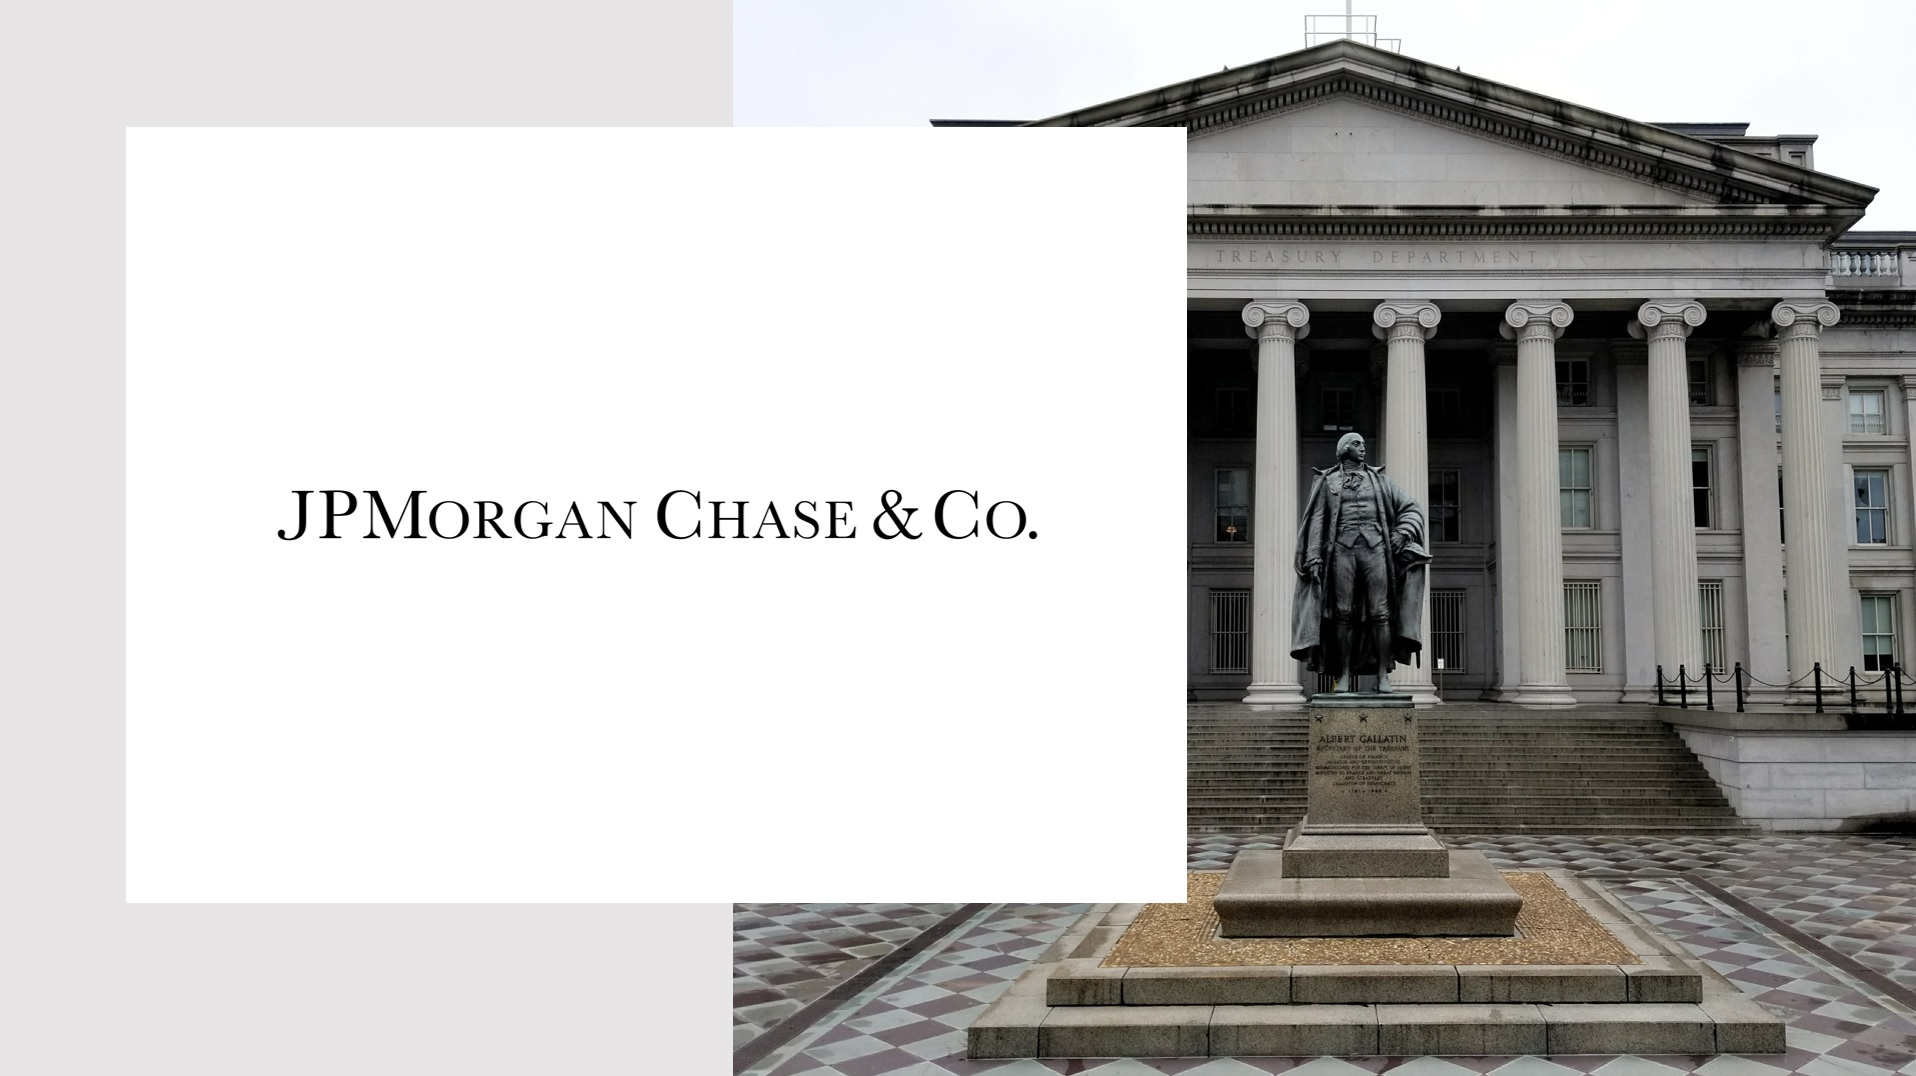 JP MORGAN is to pay a $250 million fine